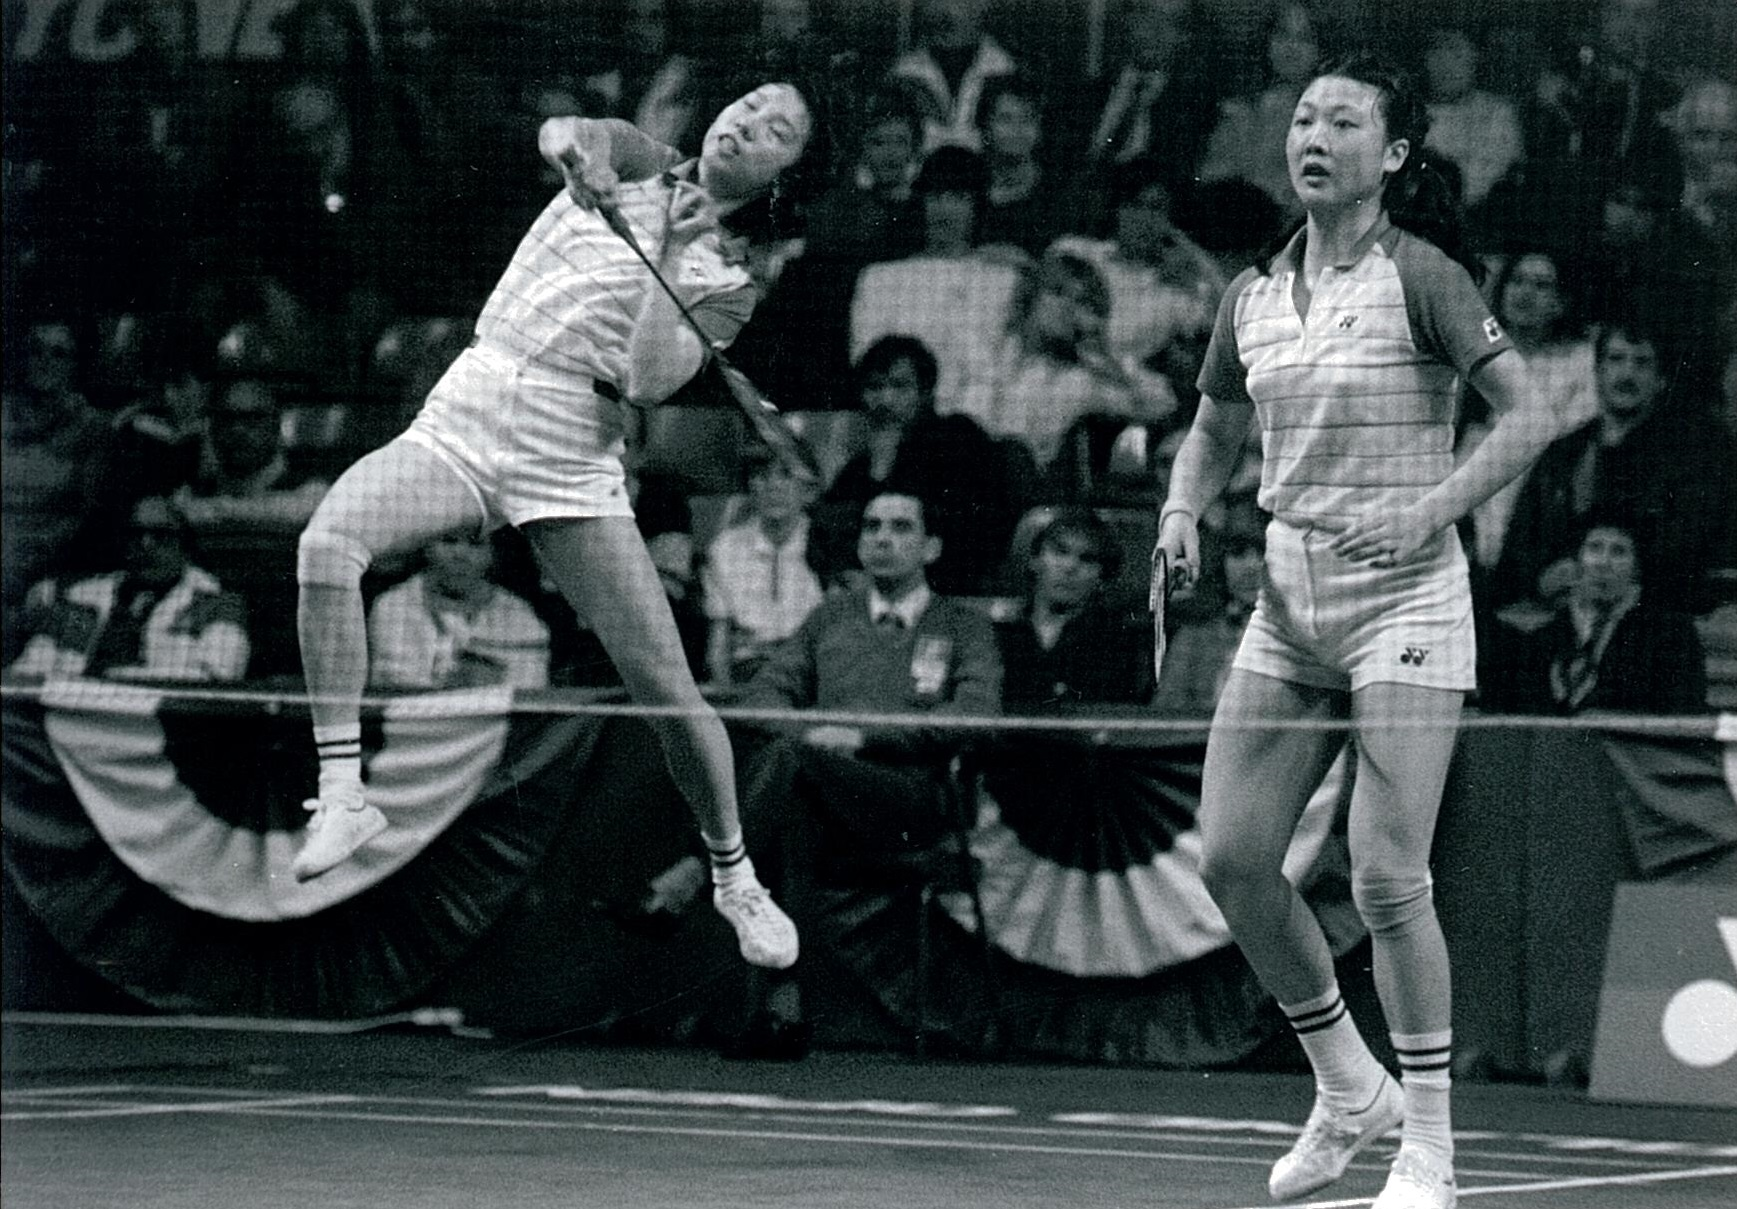 Han aiping + li lingwei in action in 1985 - pic by ulrich reddiq